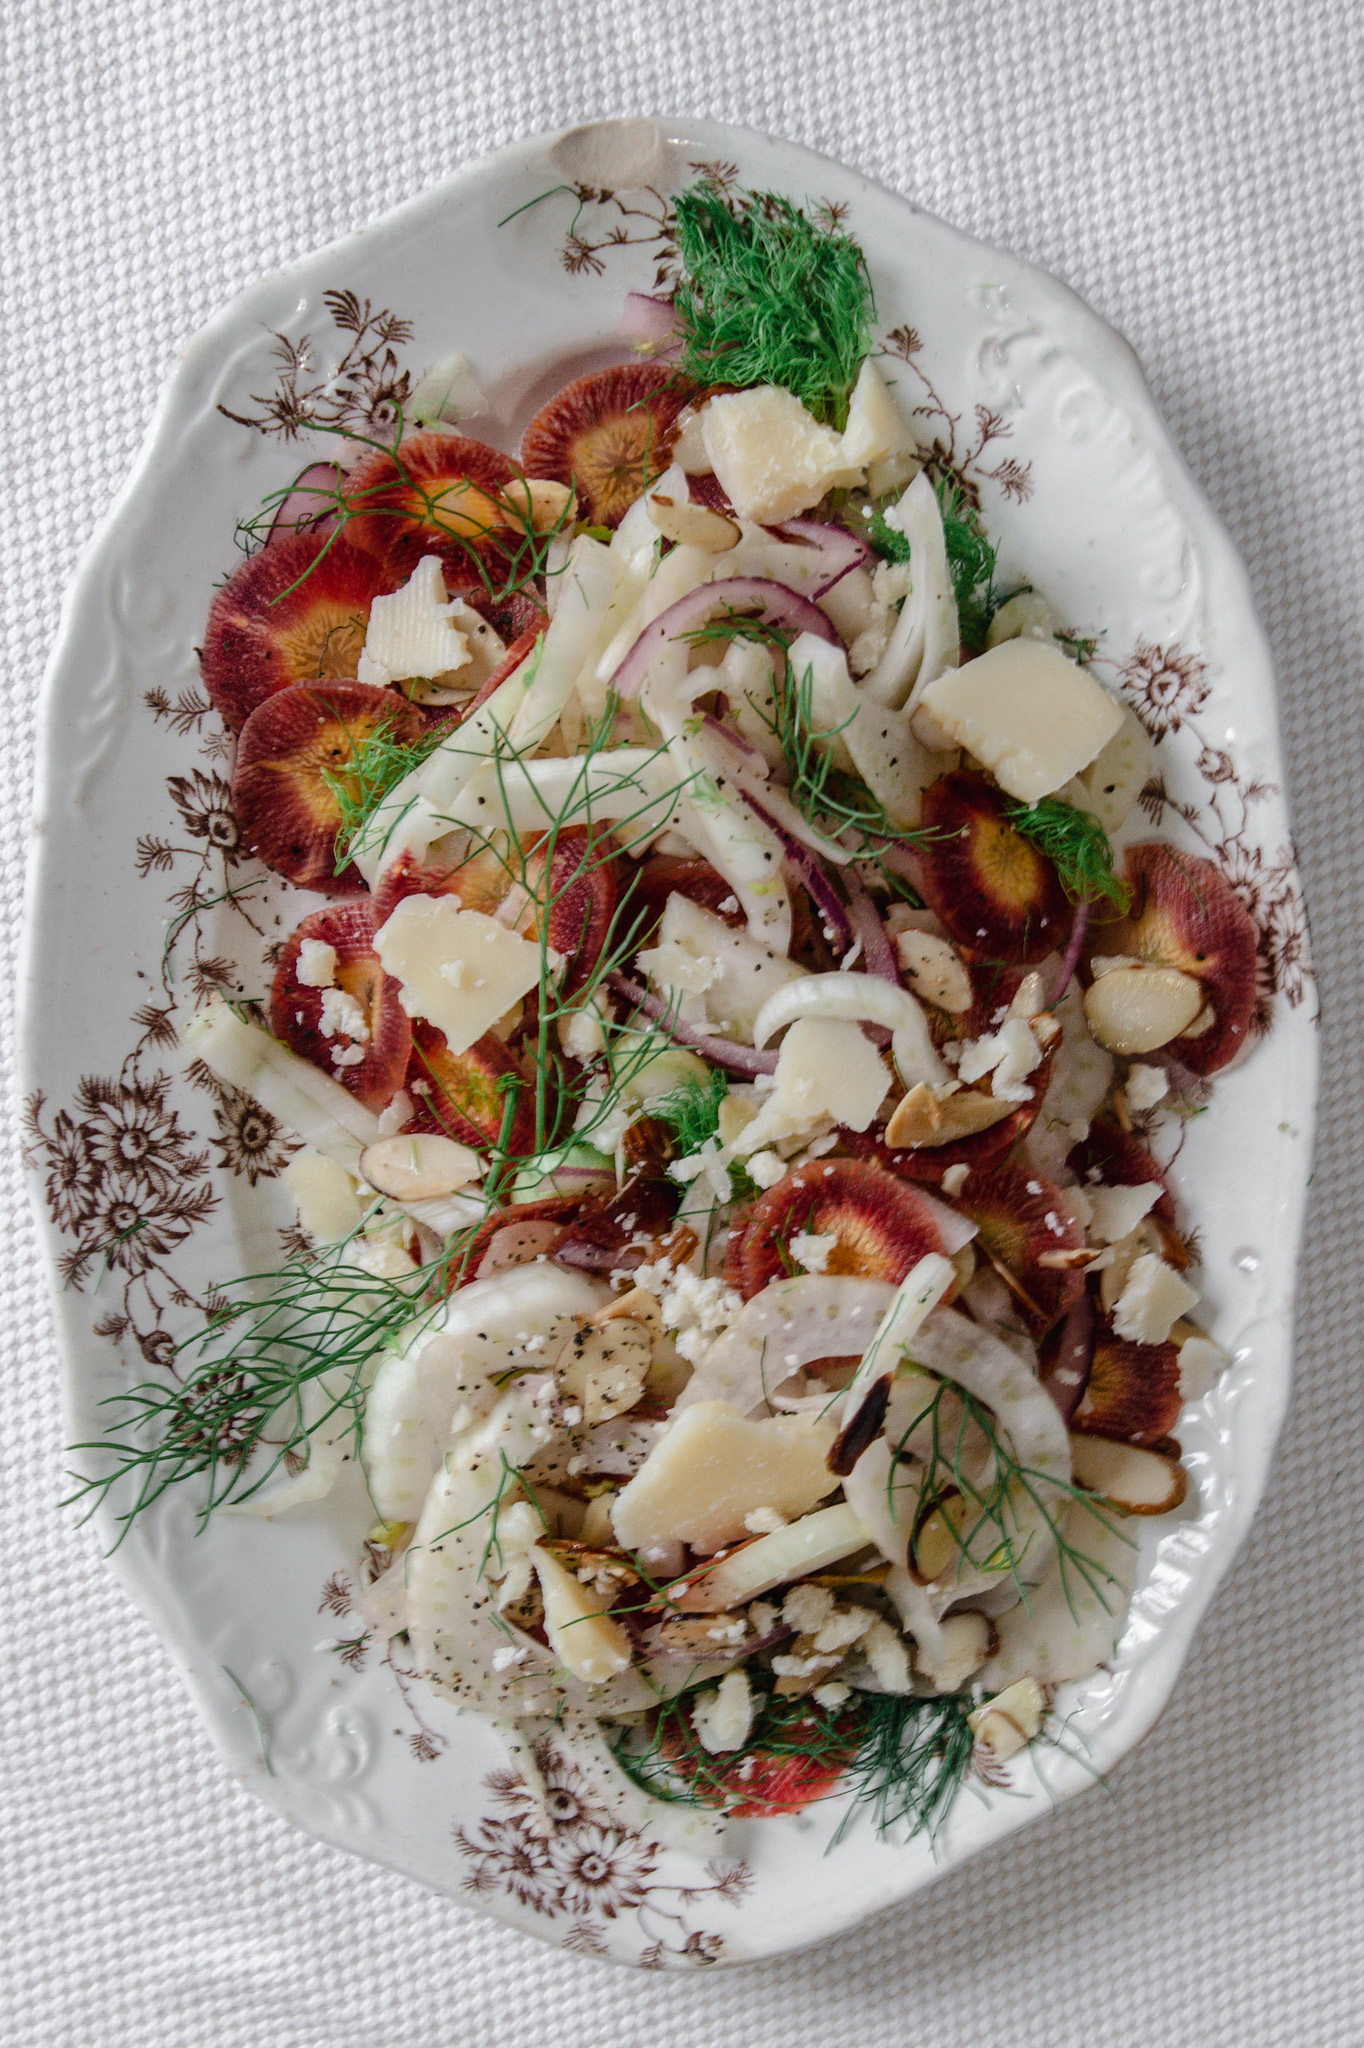 fennel and carrot side salad for Easter parties.